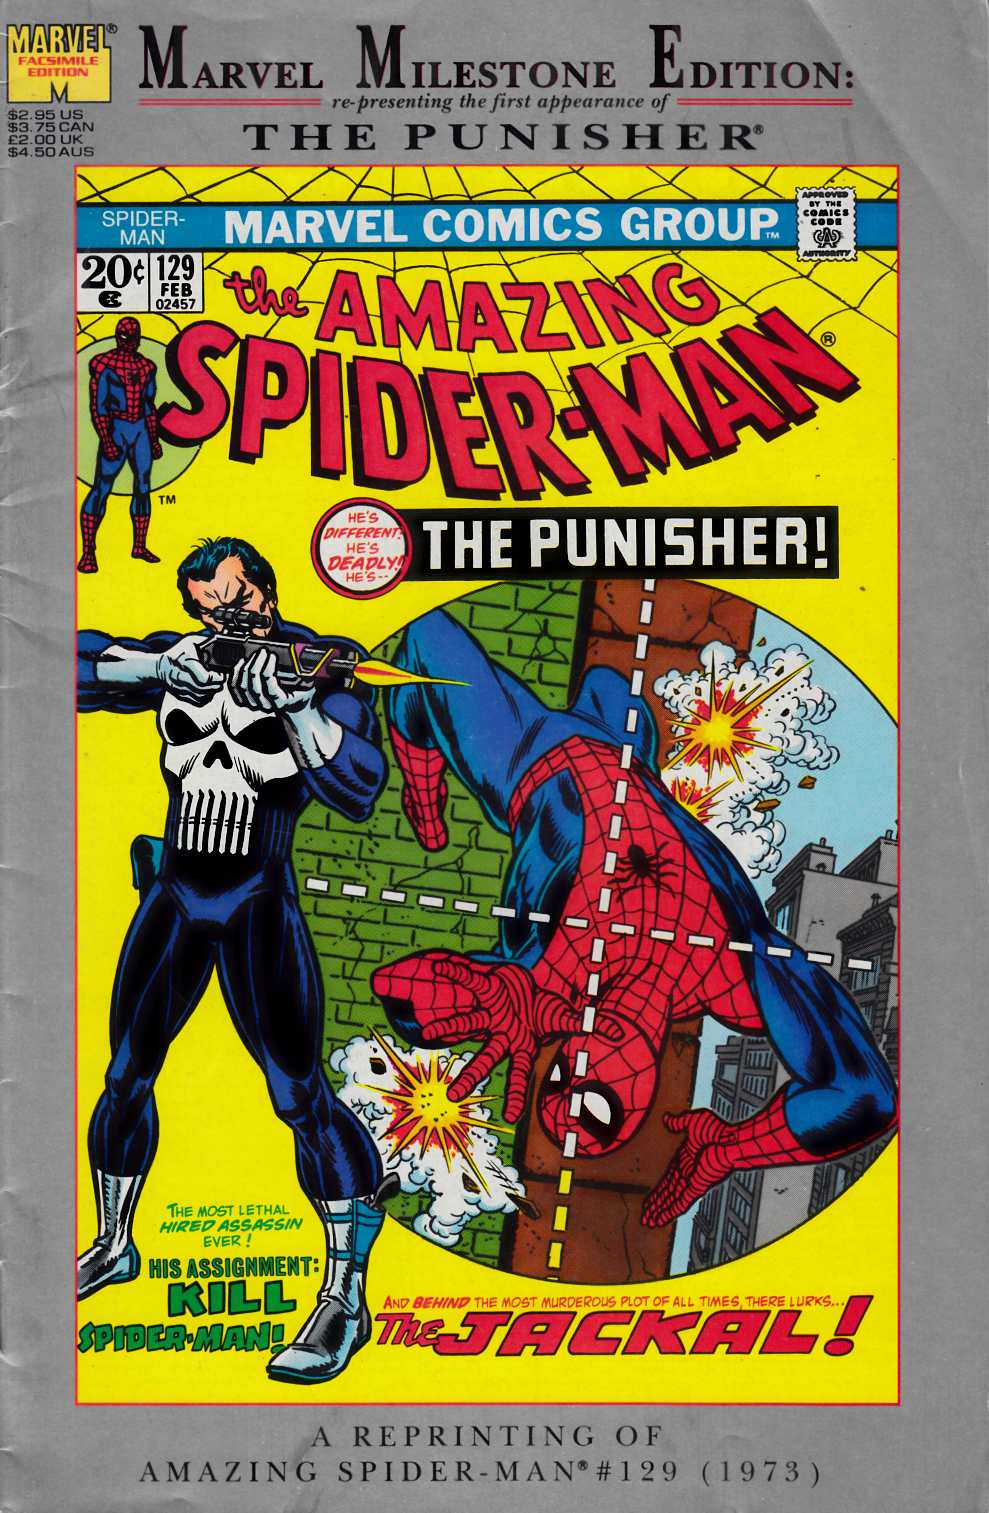 Amazing Spider-Man #129 Marvel Milestone Edition Very Good (4.0) [Marvel Comic]